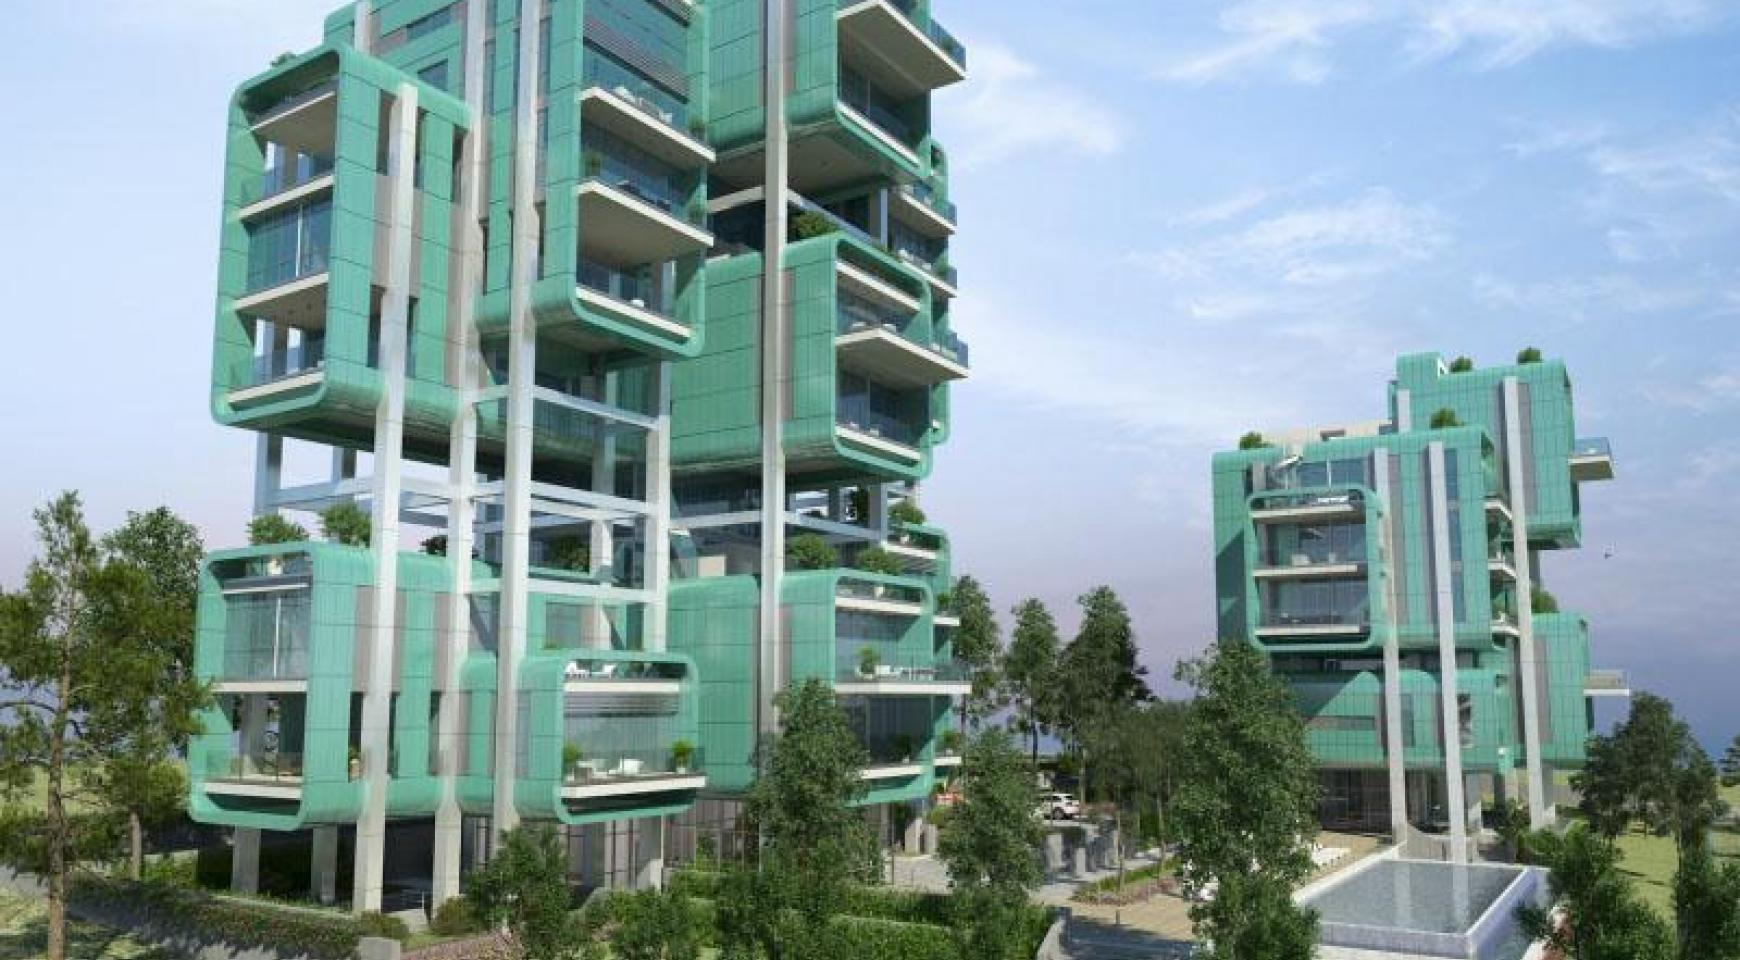 Elite 2 Bedroom Apartment with Roof Garden within a New Complex - 27